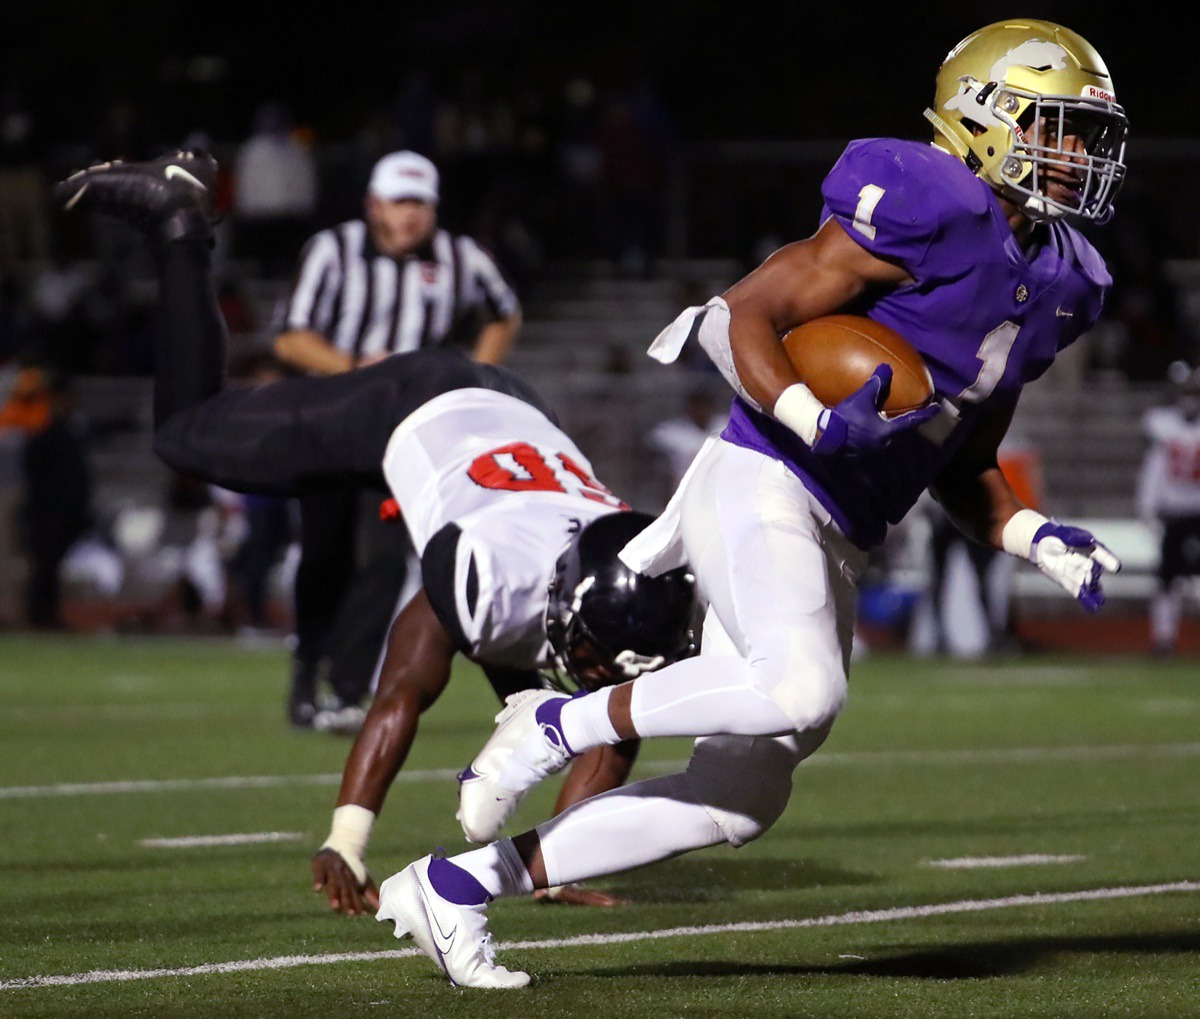 <strong>Christian Brother High School running back Dallan Hayden (1) breaks a tackle during an Oct. 16, 2020, home game against PURE Youth Athletics.</strong> (Patrick Lantrip/Daily Memphian)